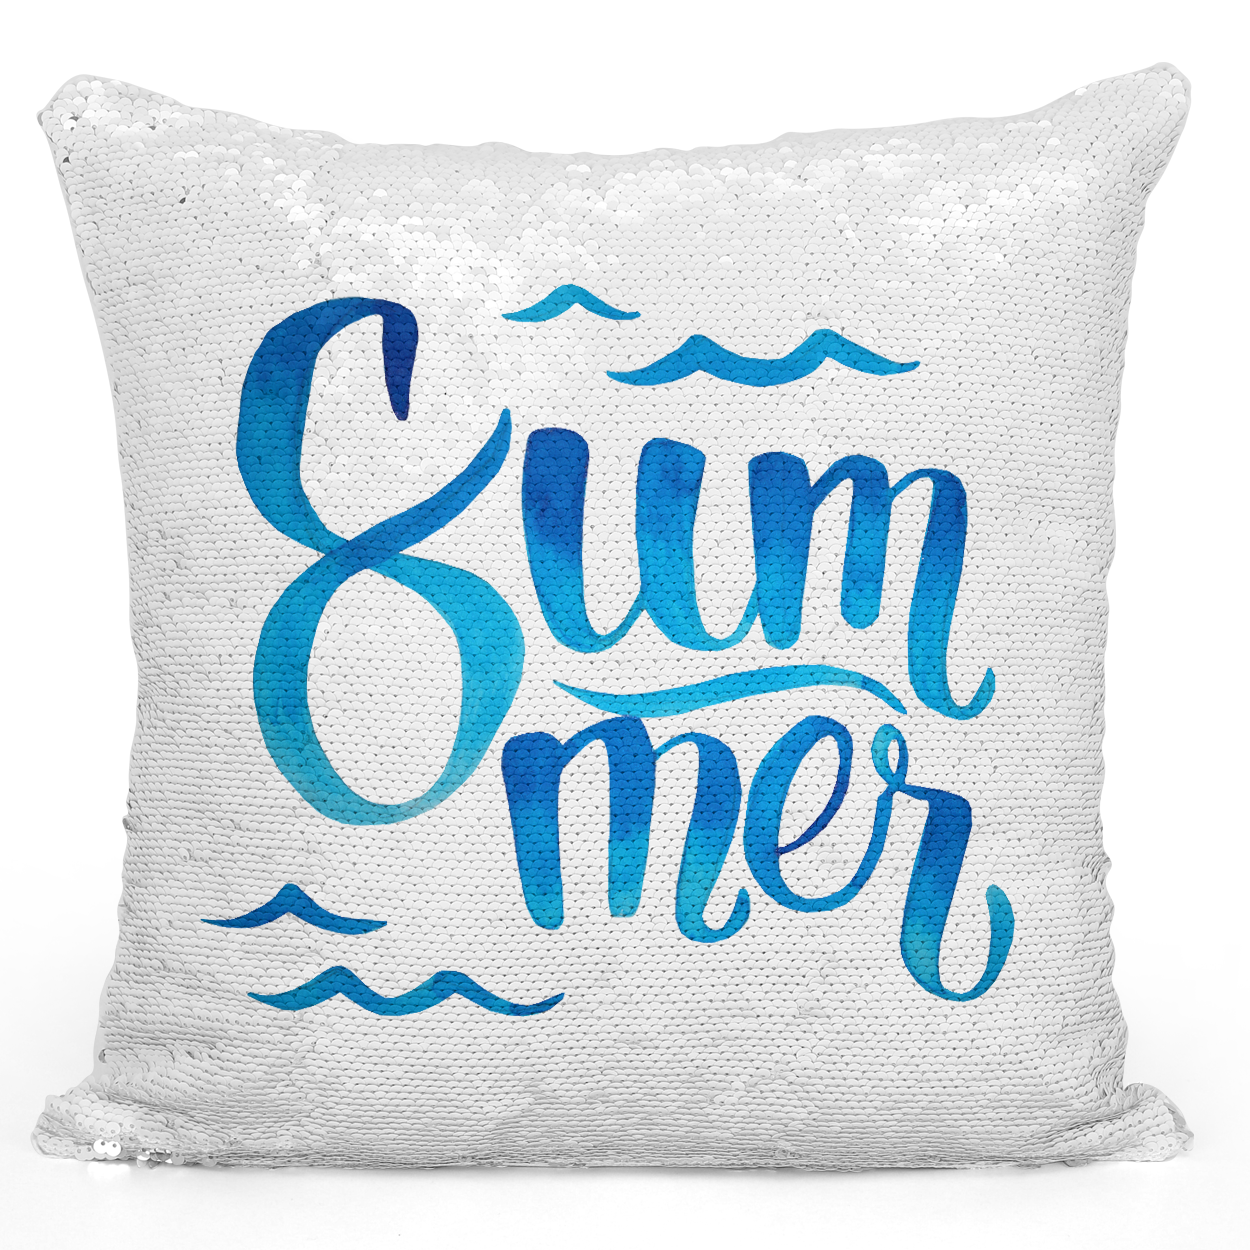 Sequin Pillow Magic Mermaid Throw Pillow Blue Watercolor Summer Pillow Beach Waves - Durable White 16 x 16 inch Square Livingroom Sofa Couch Pillow Loud Universe